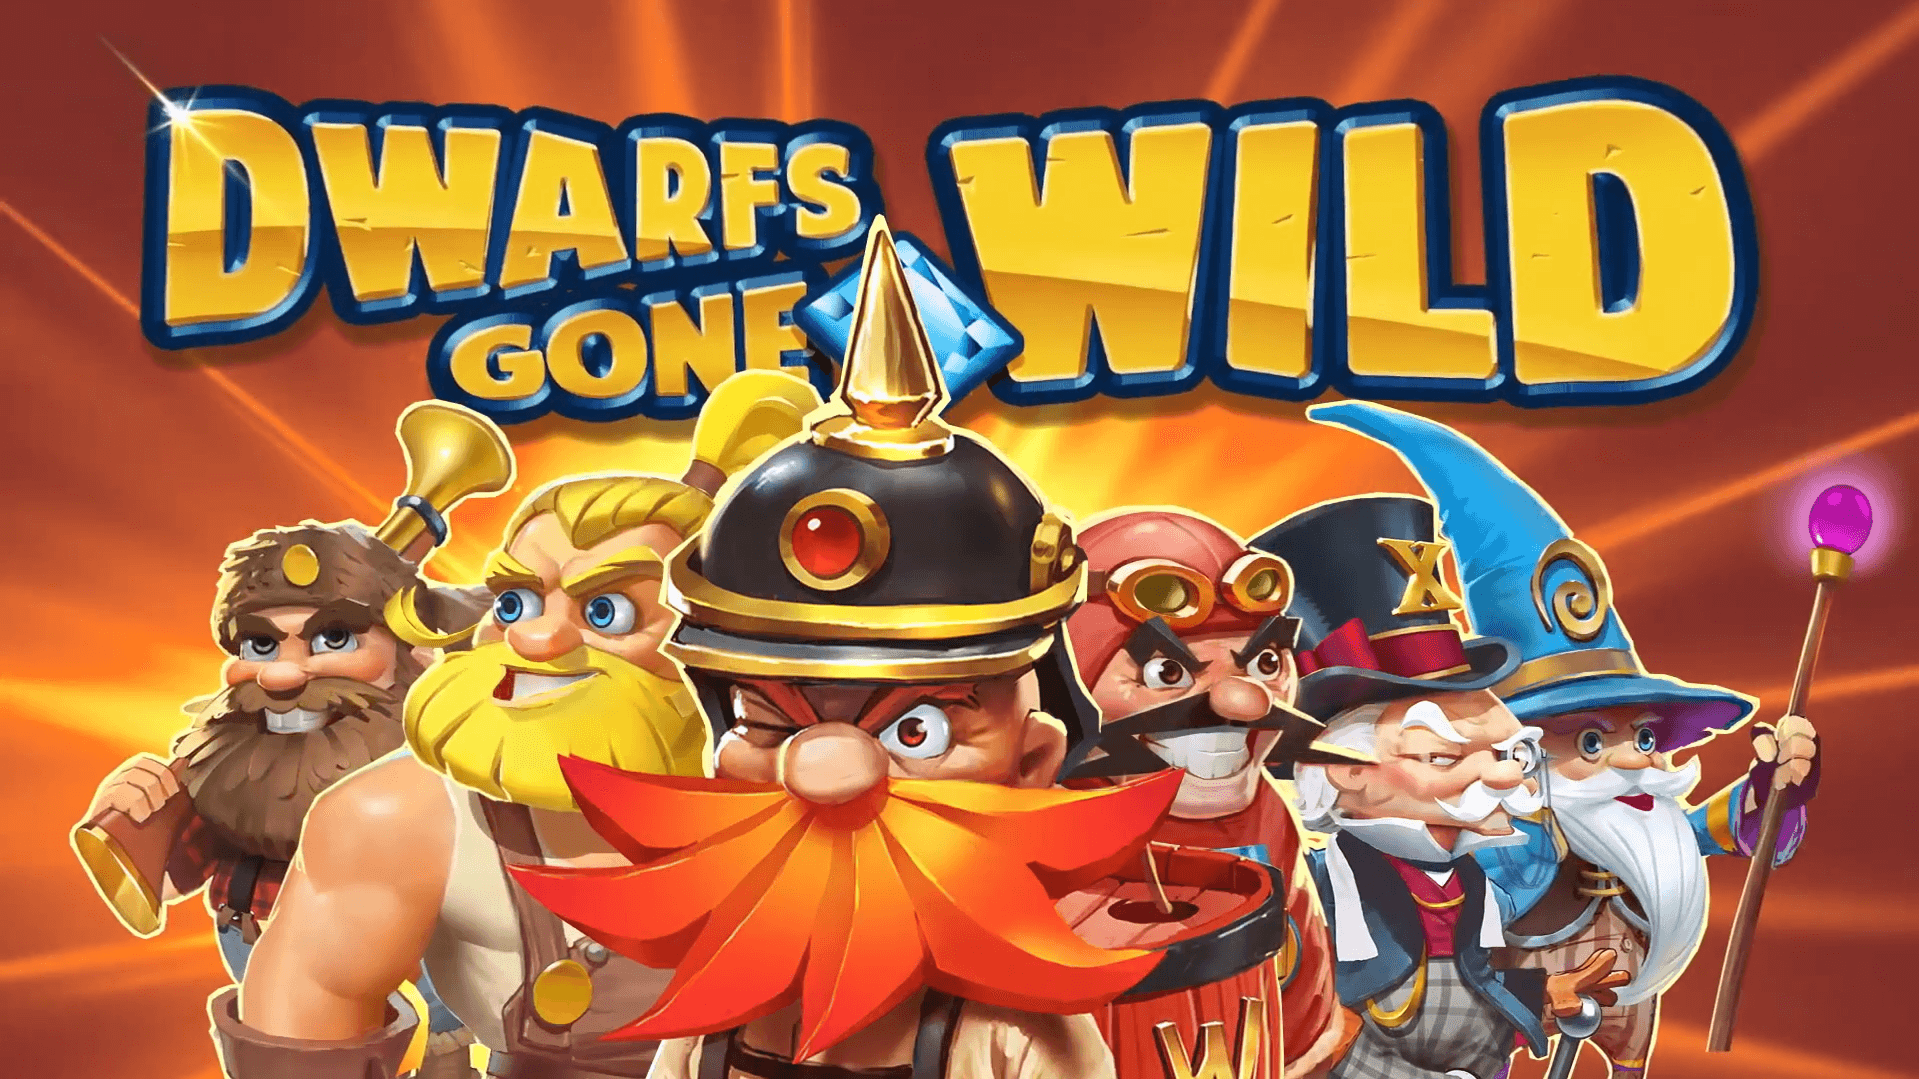 Spiele Dwarfs Gone Wild - Video Slots Online